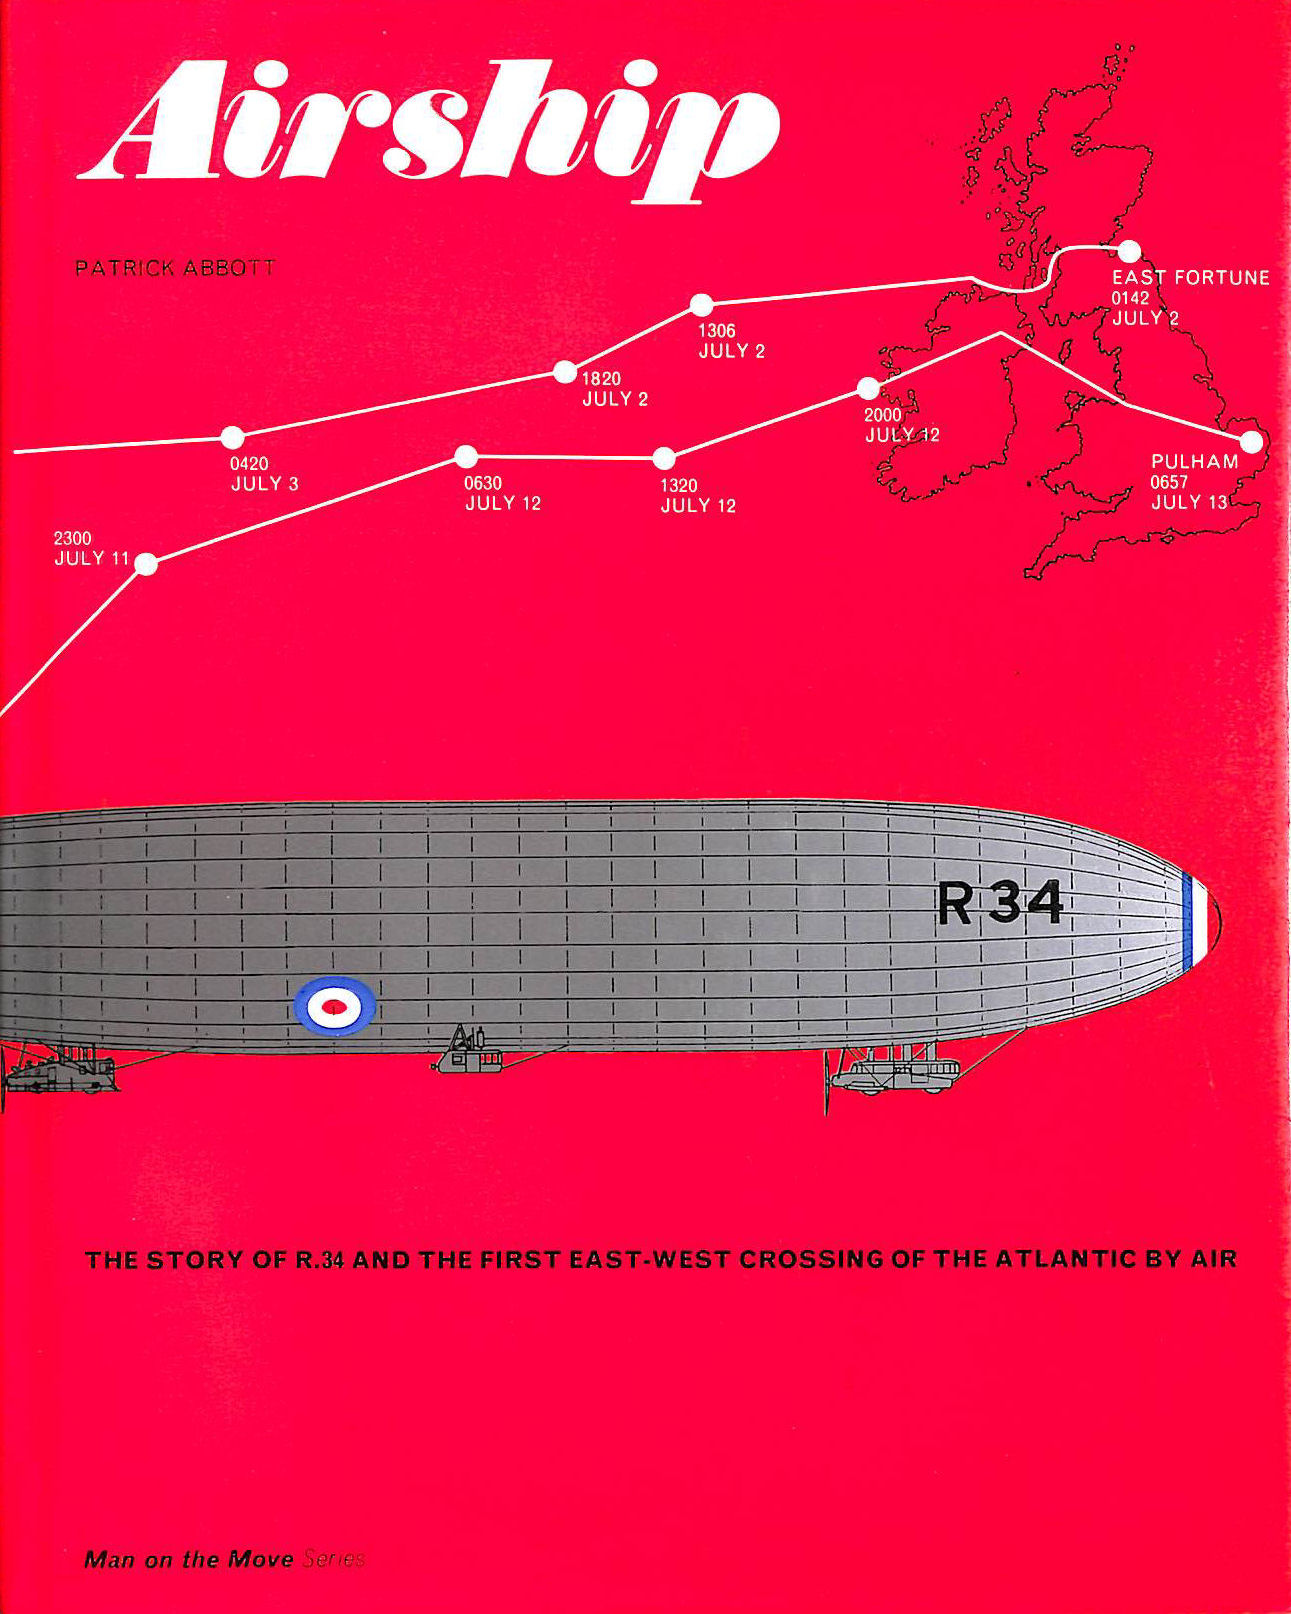 Image for Airship: The Story of the R.34 and the First East-west Crossing of the Atlantic by Air (Man on the move series)